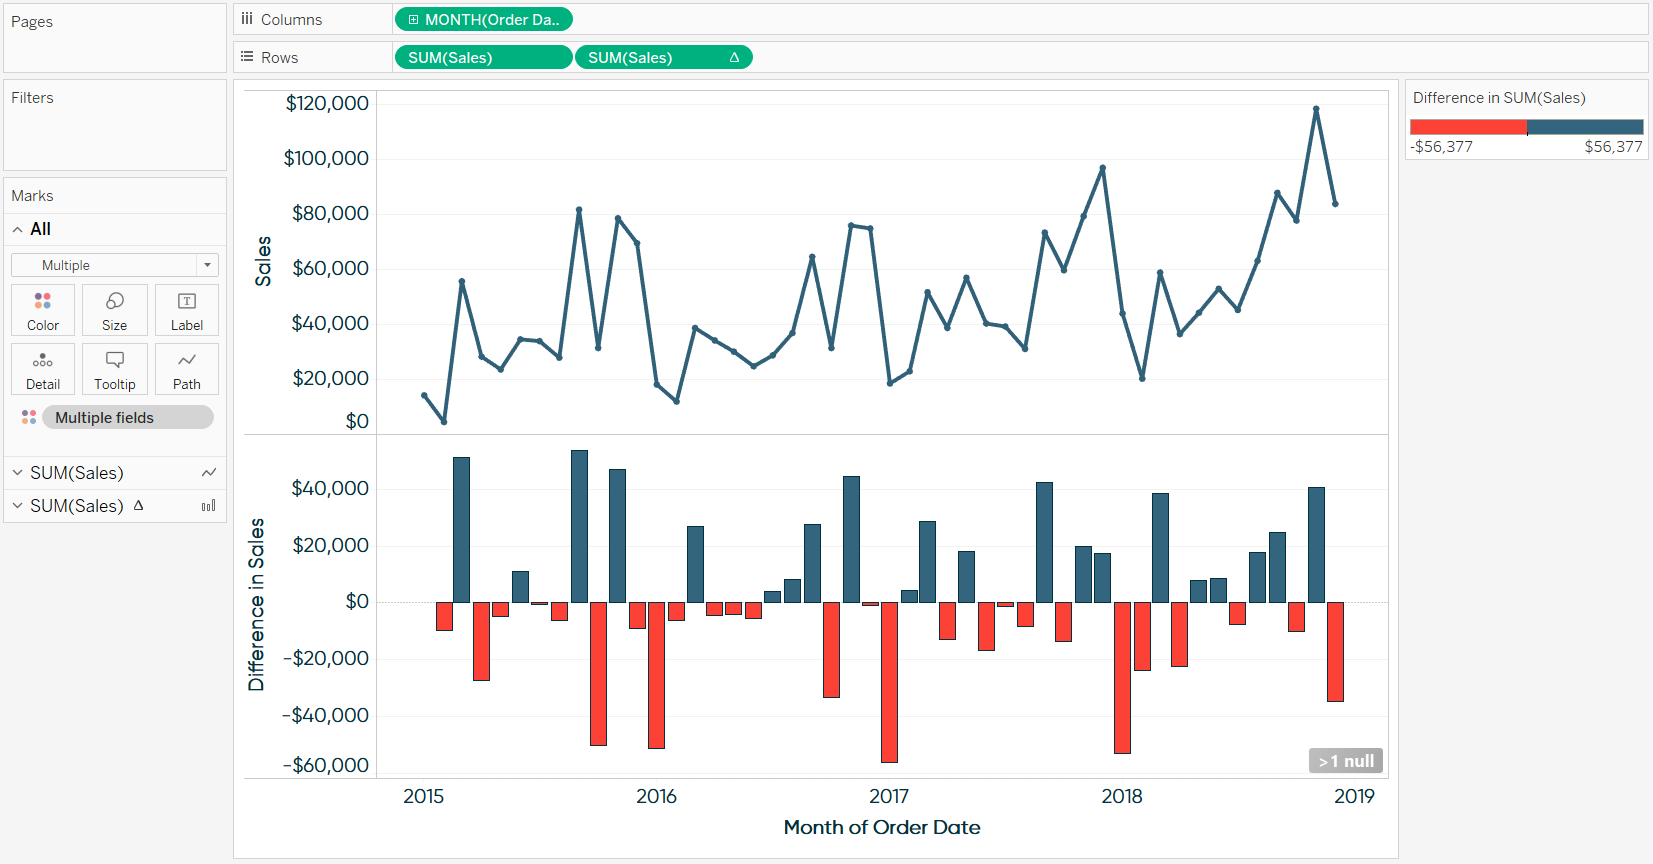 Two Row Combination Chart Showing Sales and Month over Month Difference in Tableau